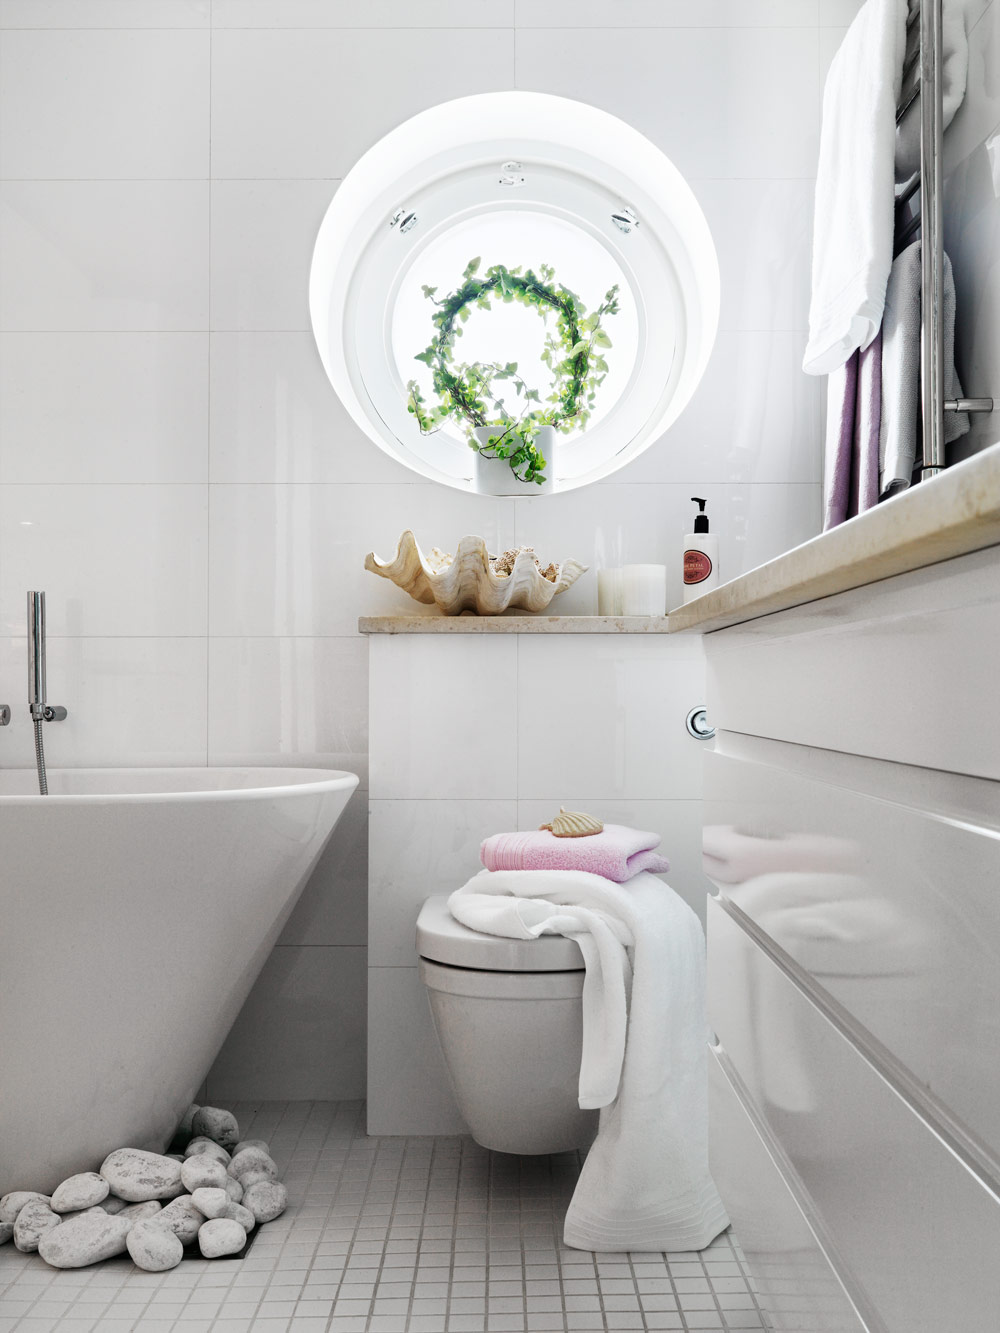 Stylish small bathroom with an unusual decor digsdigs for Bathroom ideas accessories